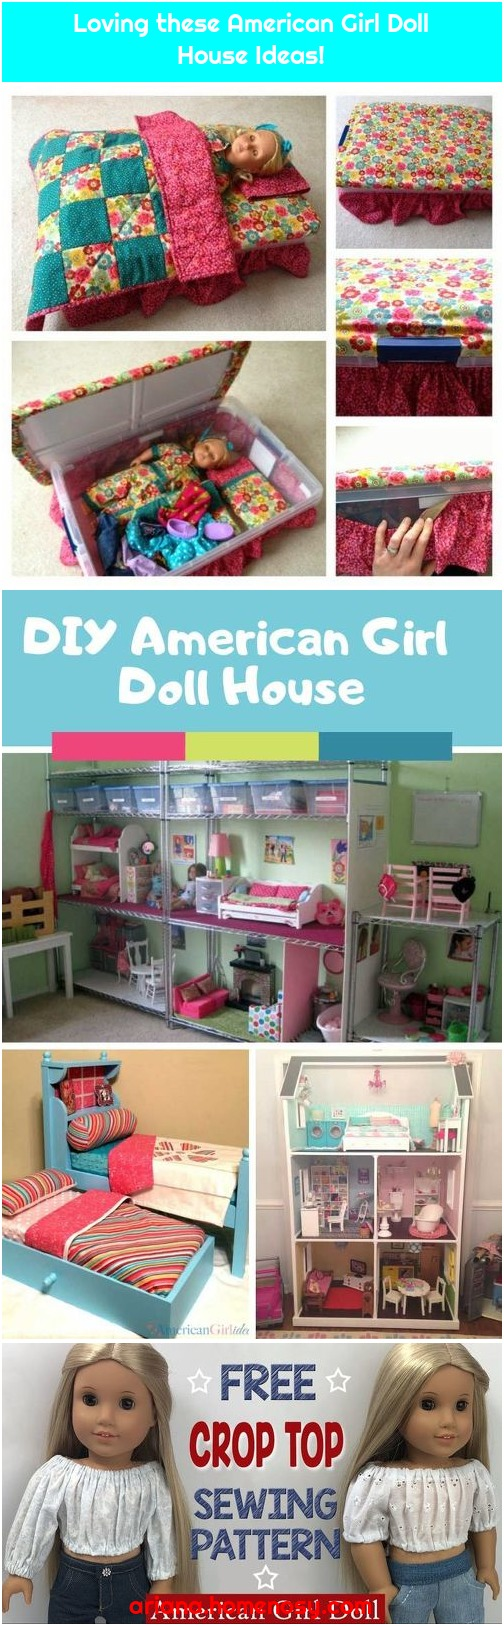 Loving these American Girl Doll House Ideas!